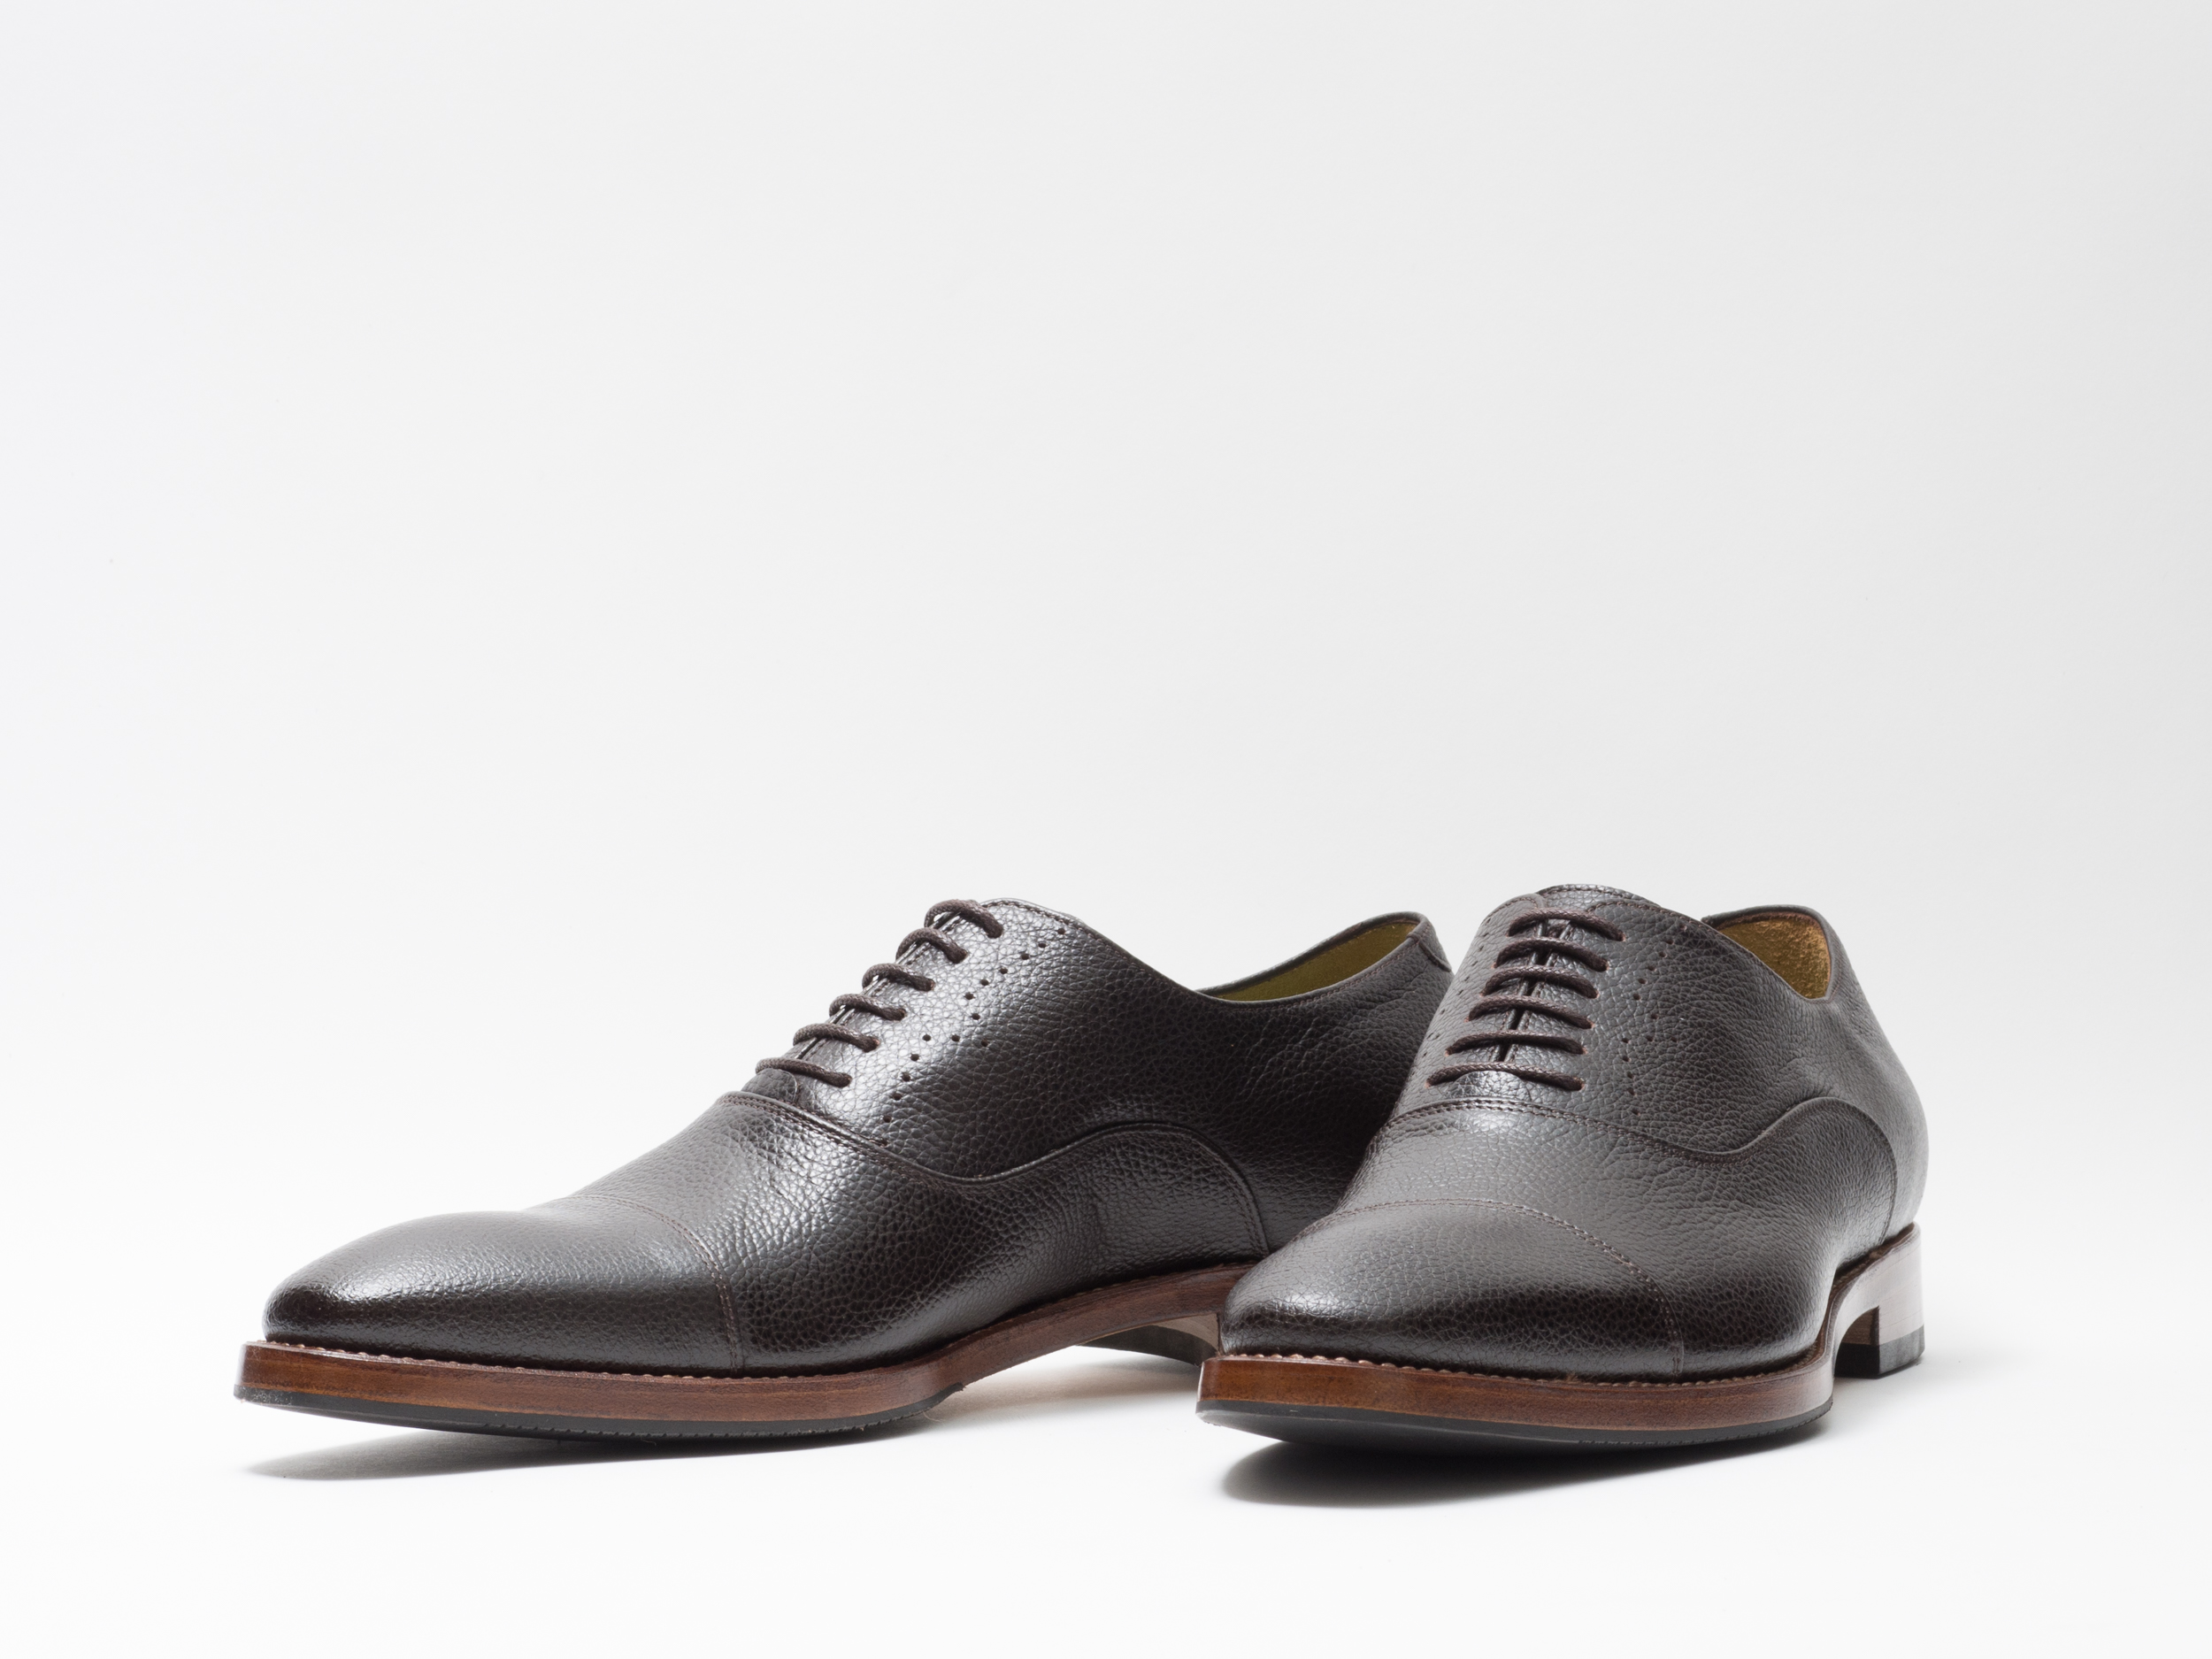 DRESS SHOE D.BROWN PEBBLED